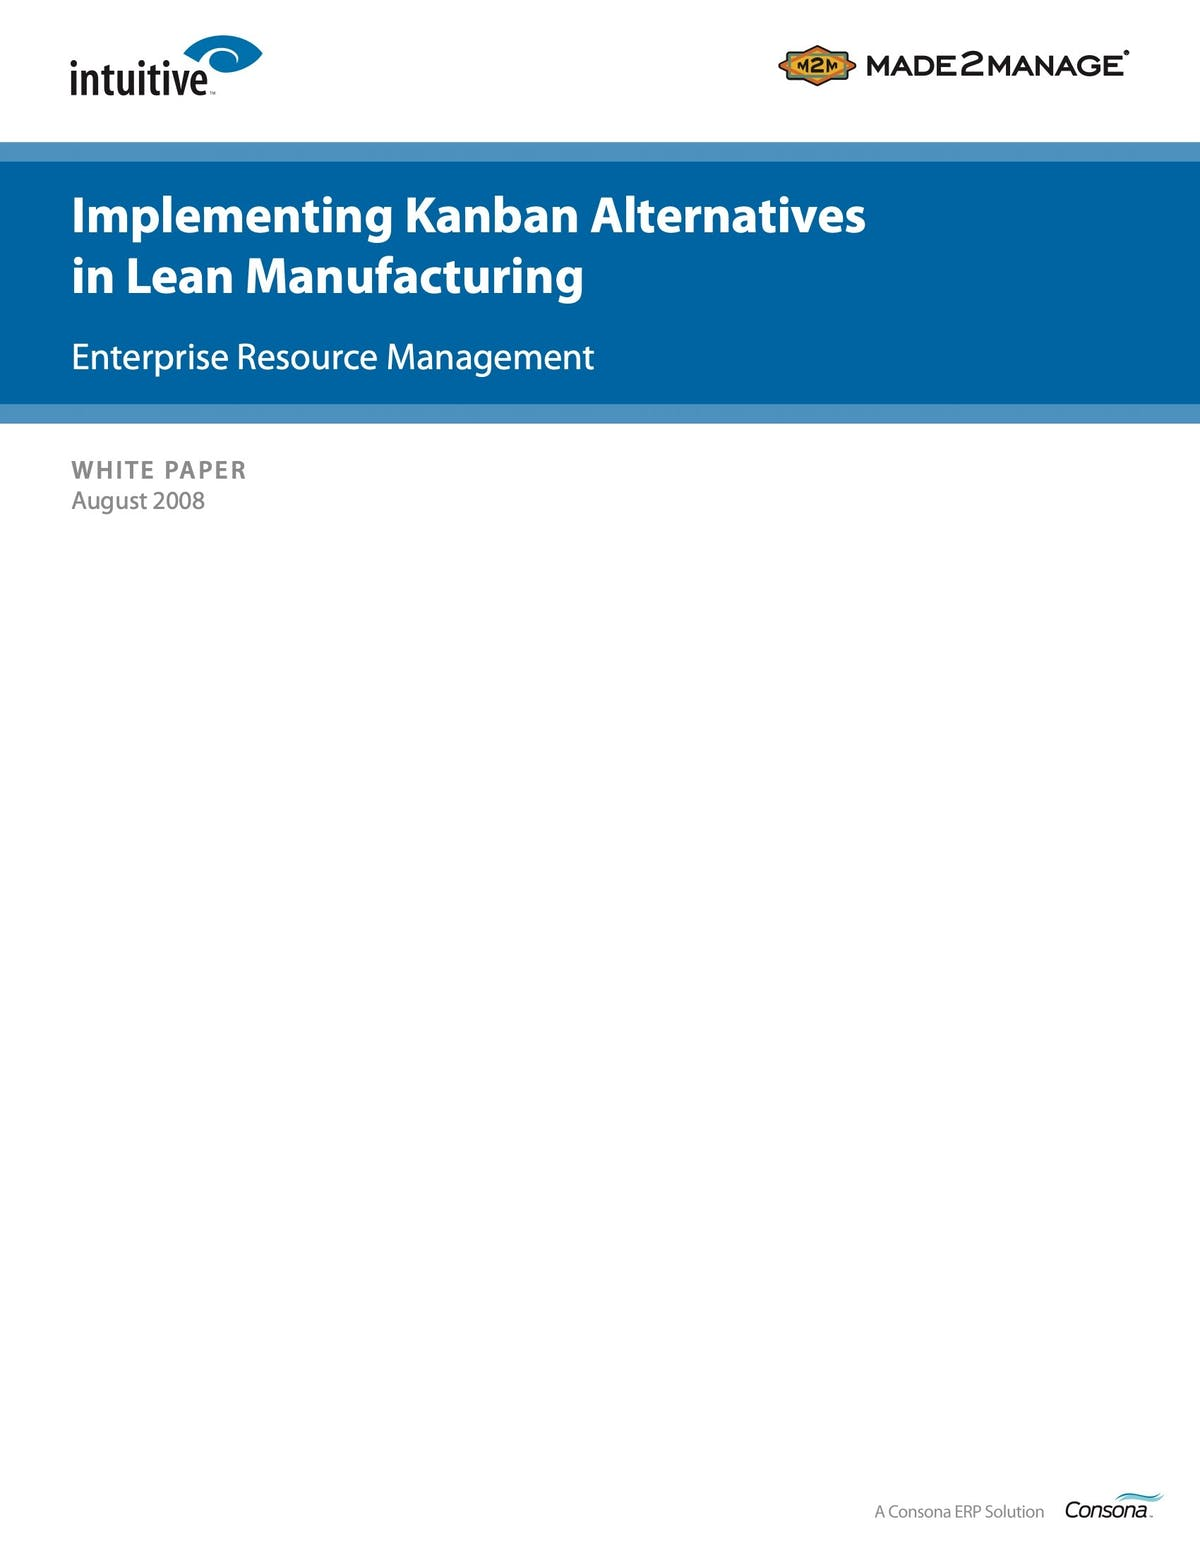 Made2Manage ERP White Paper - Implementing Kanban Alternative in Lean Manufacturing